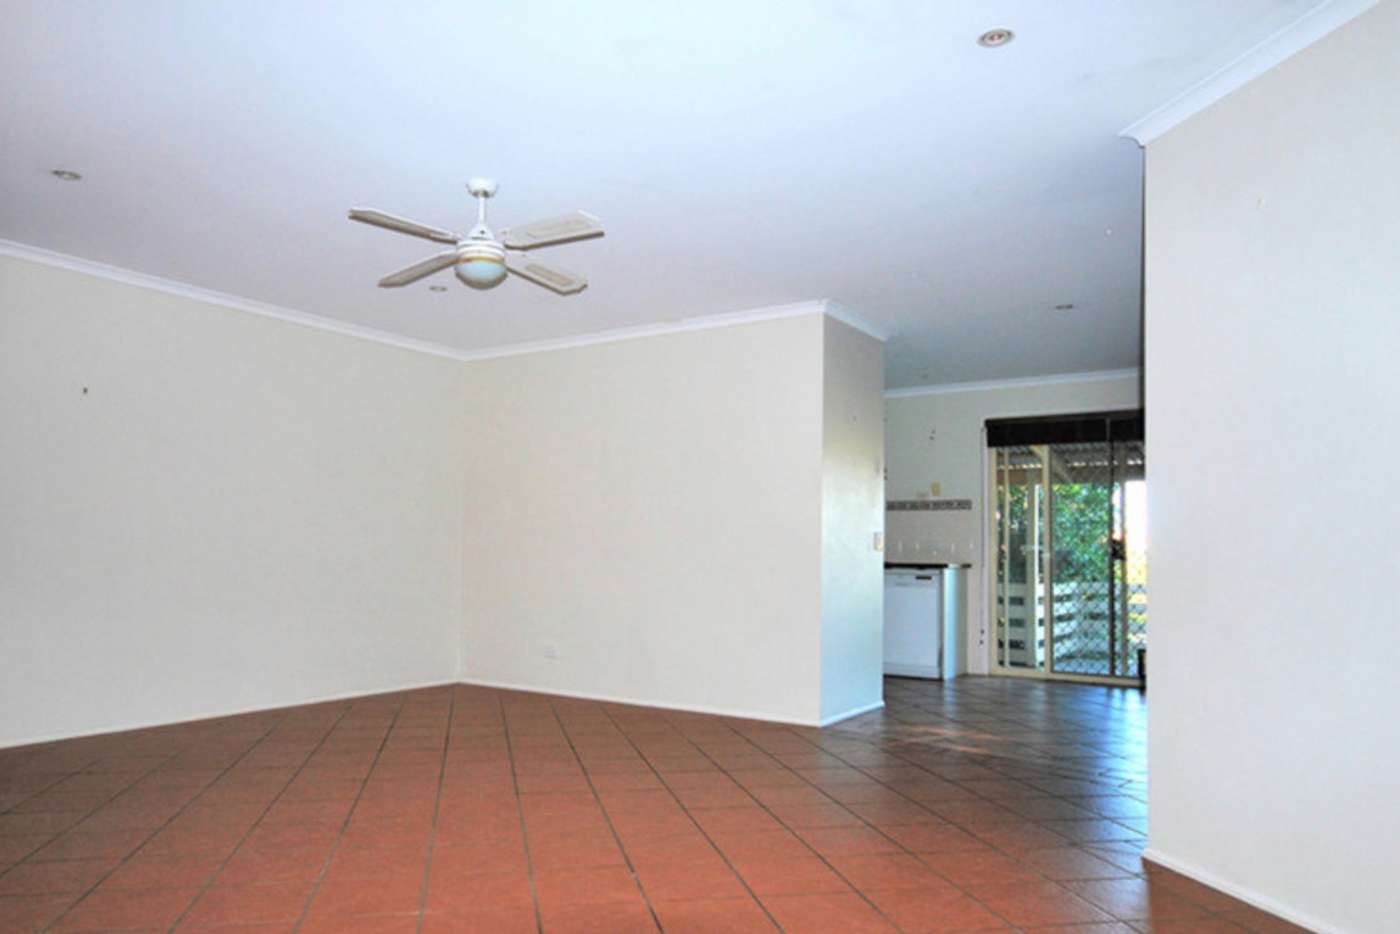 Main view of Homely house listing, 13 Southlake Drive, Varsity Lakes QLD 4227